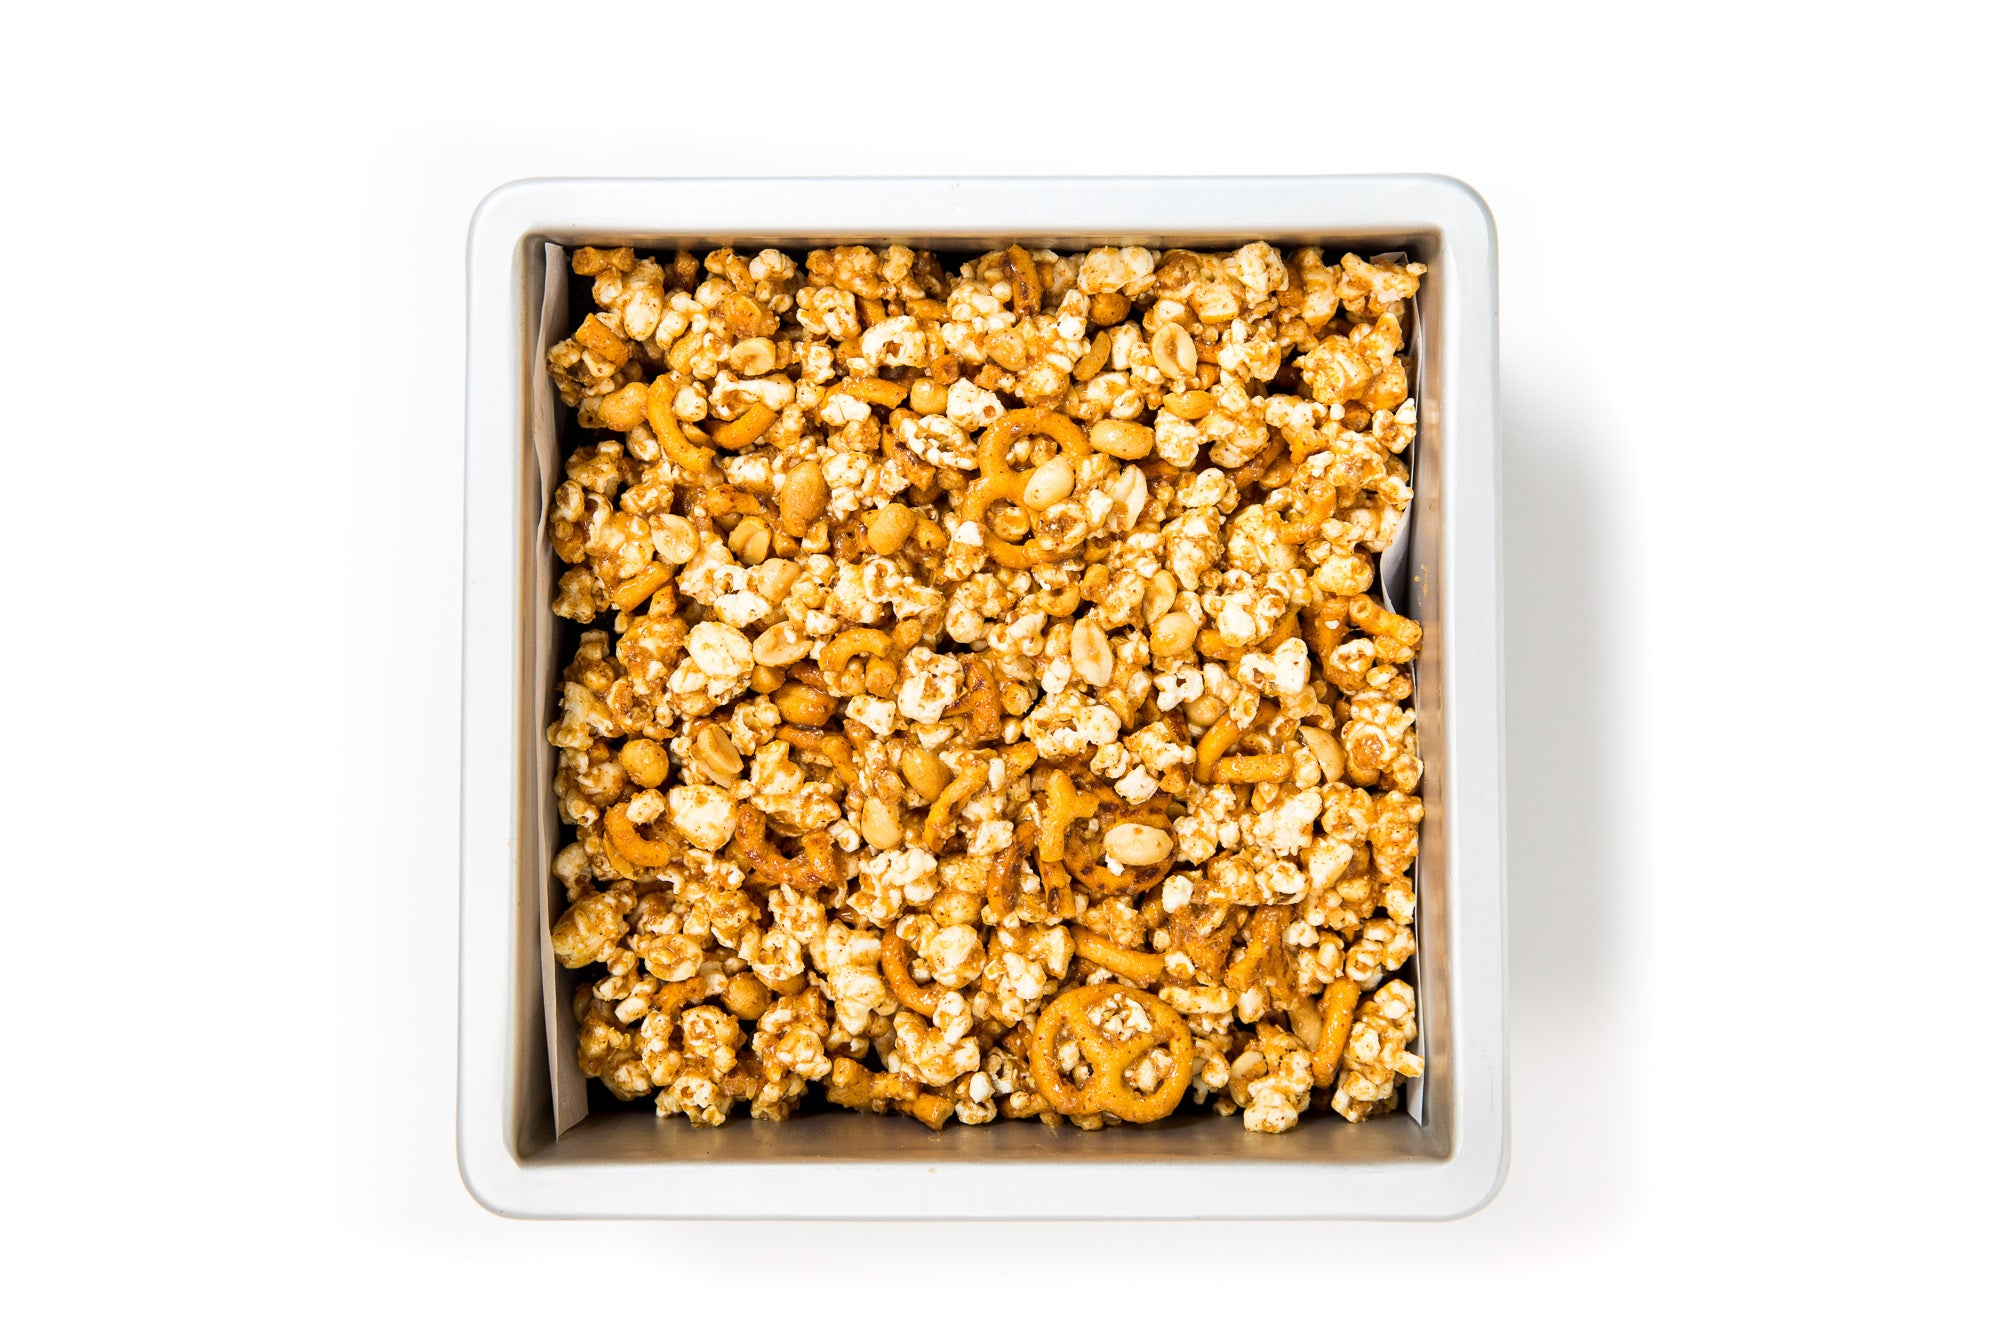 Image from above of a baking pan with Miss Jones Baking Co Popcorn Brownies